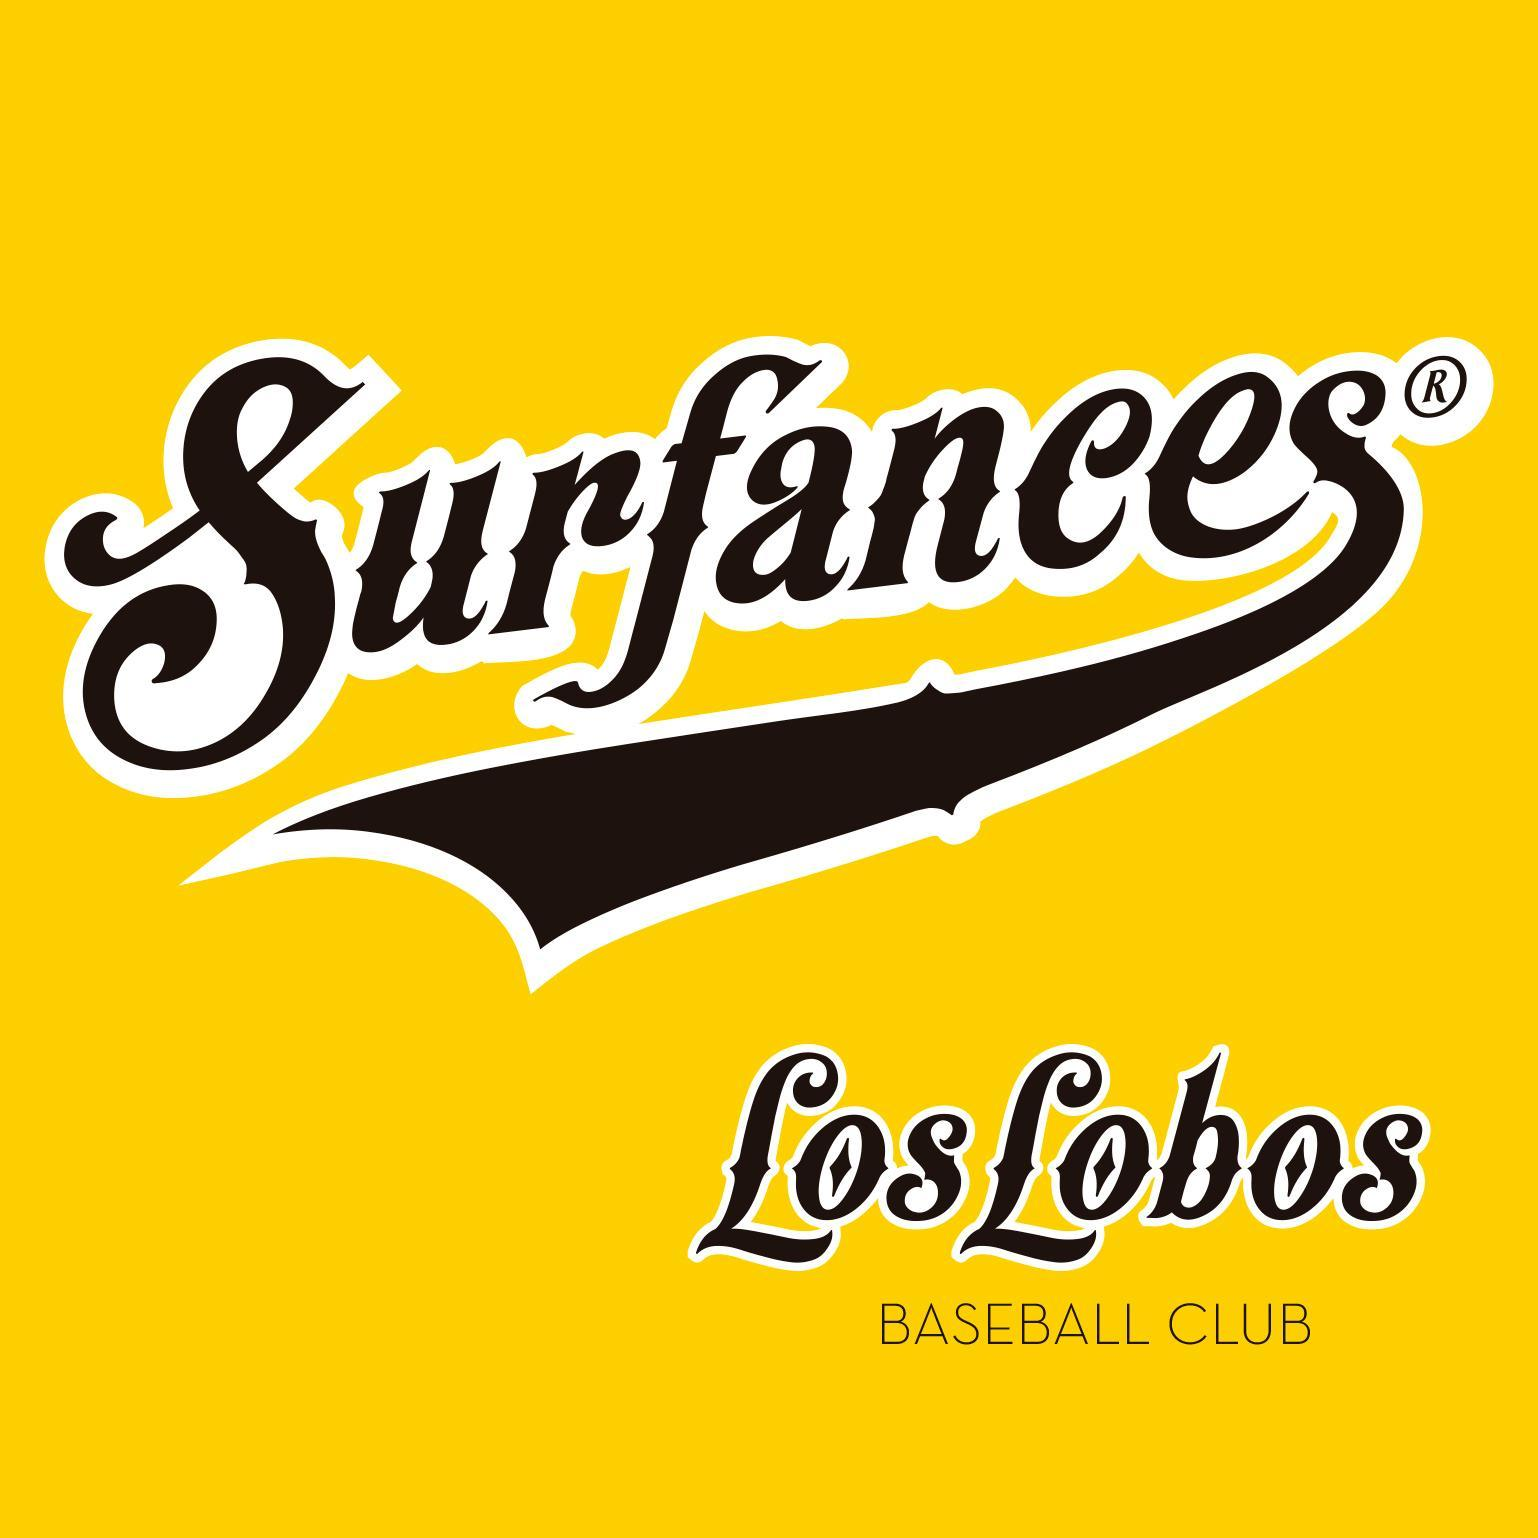 Lobos Surfances